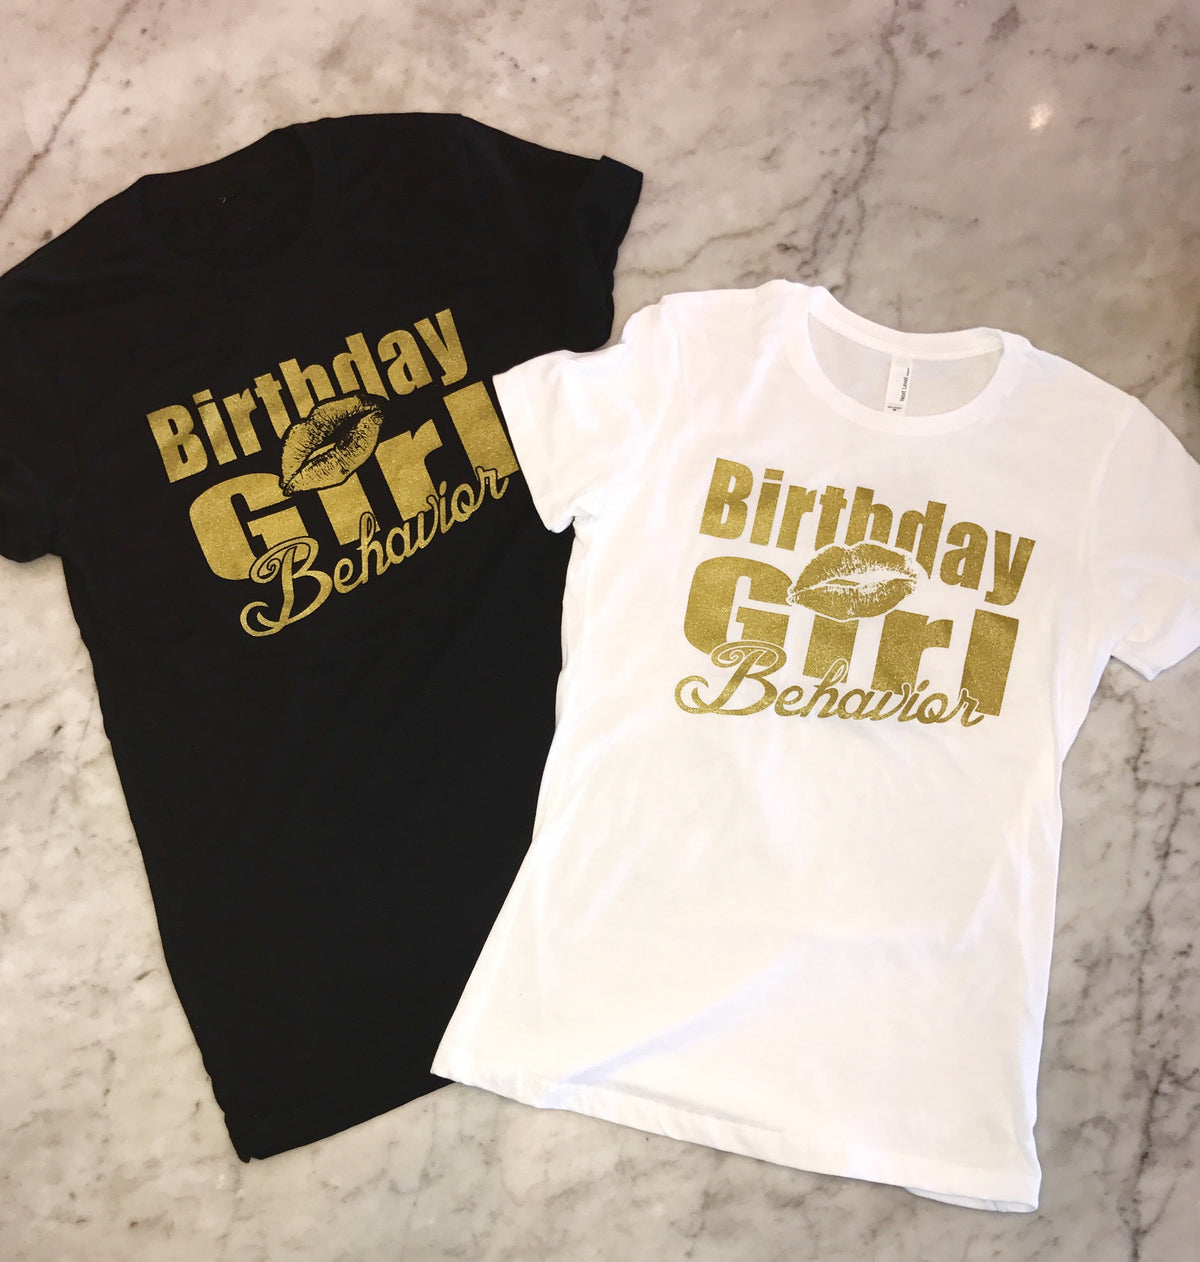 Birthday Behavior Boyfriend Tee in White or Black with Gold Shimmer Ink